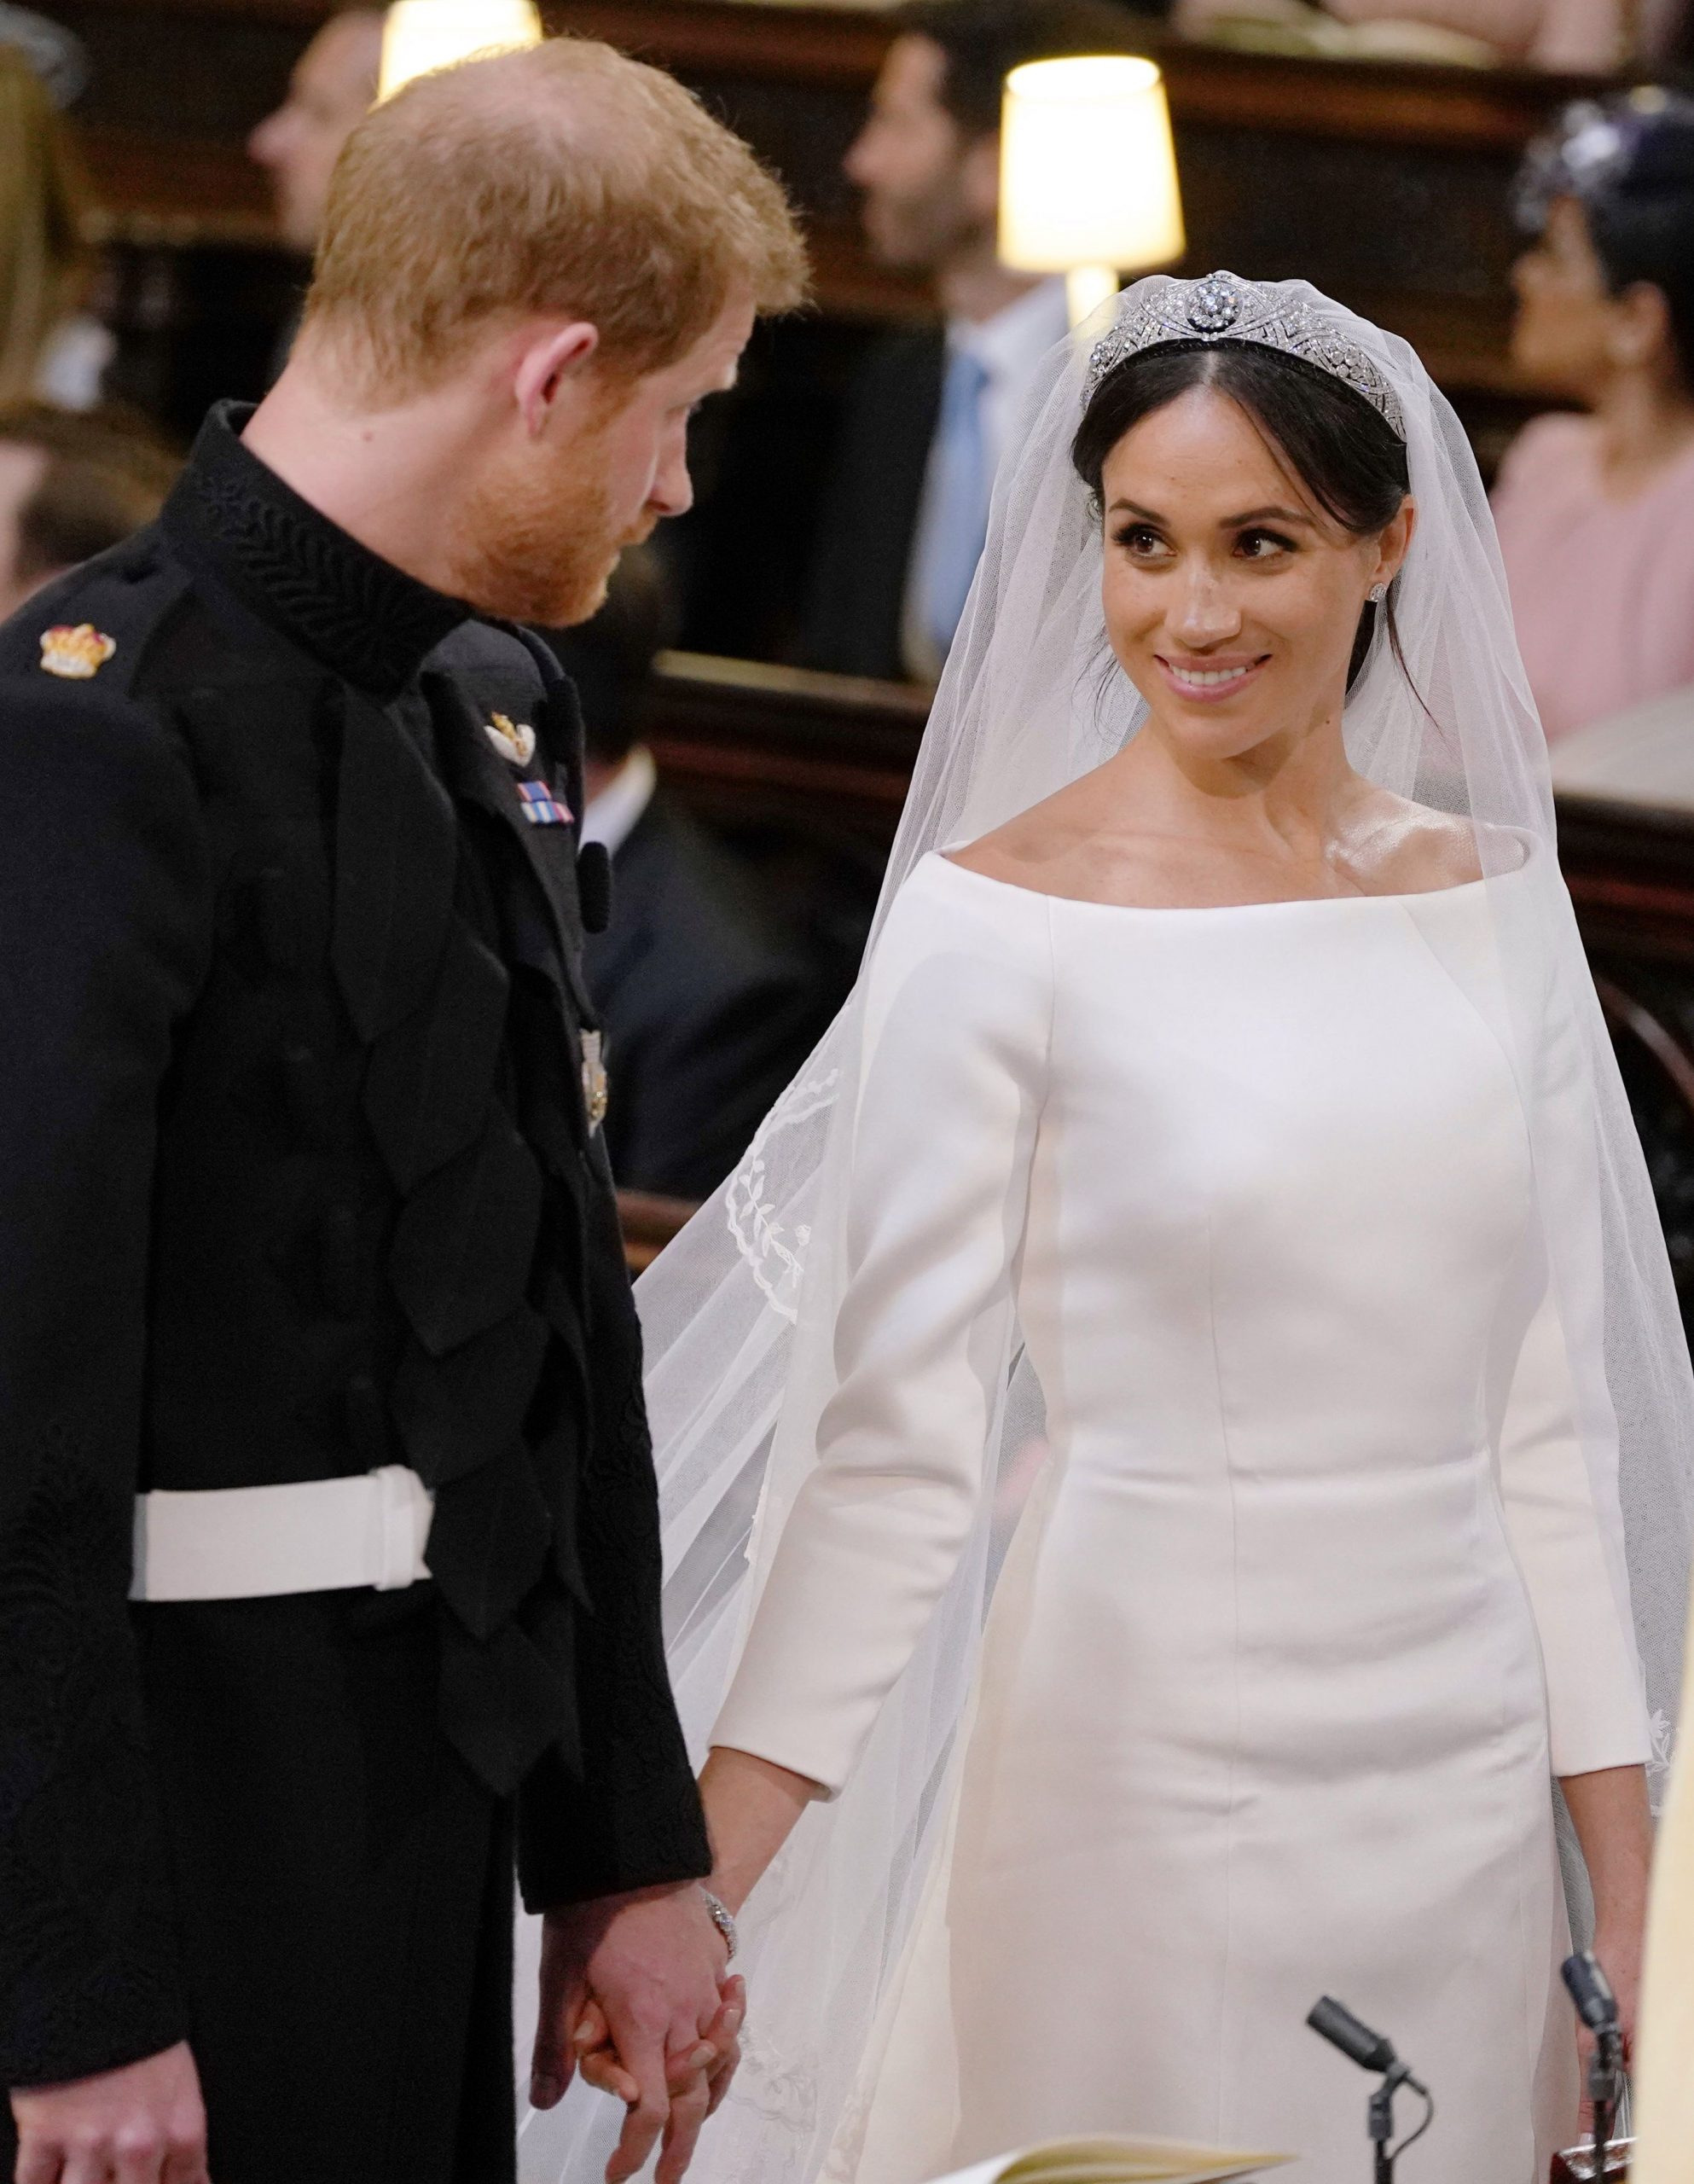 Meghan Markle's Royal Wedding Dress Is A Nod To American